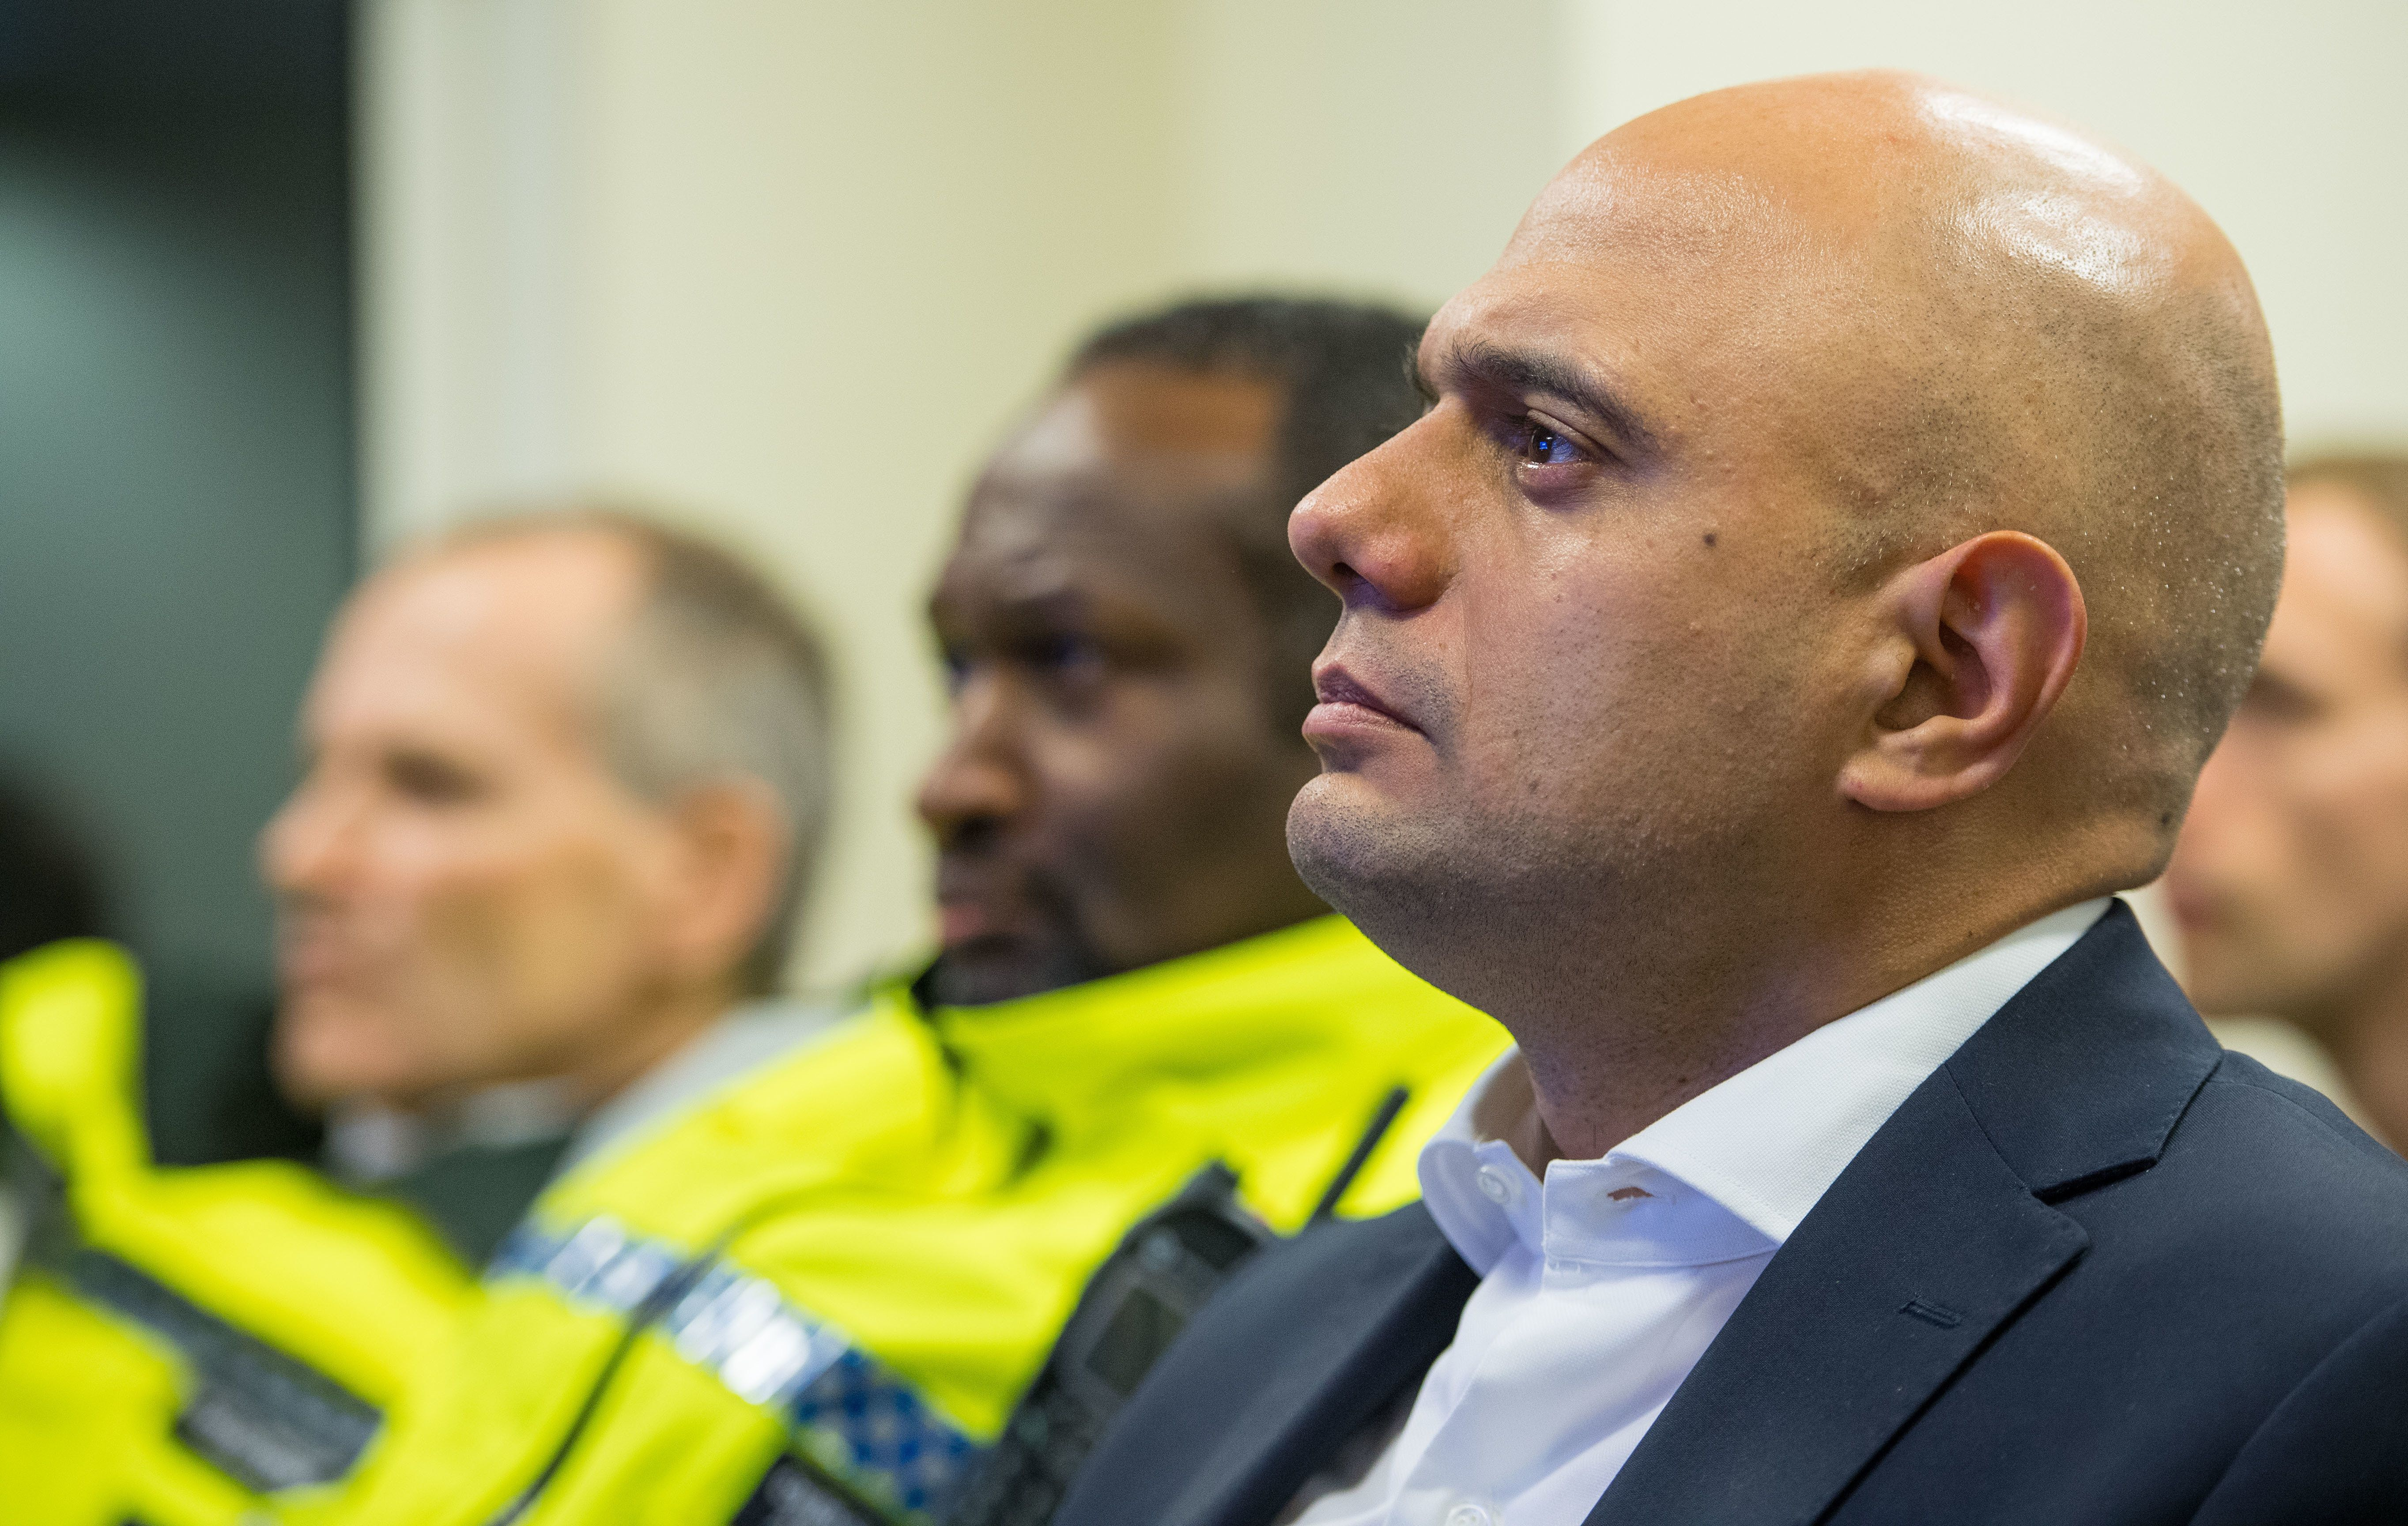 Sajid Javid Launches Major Review Into Link Between Drugs And Violent